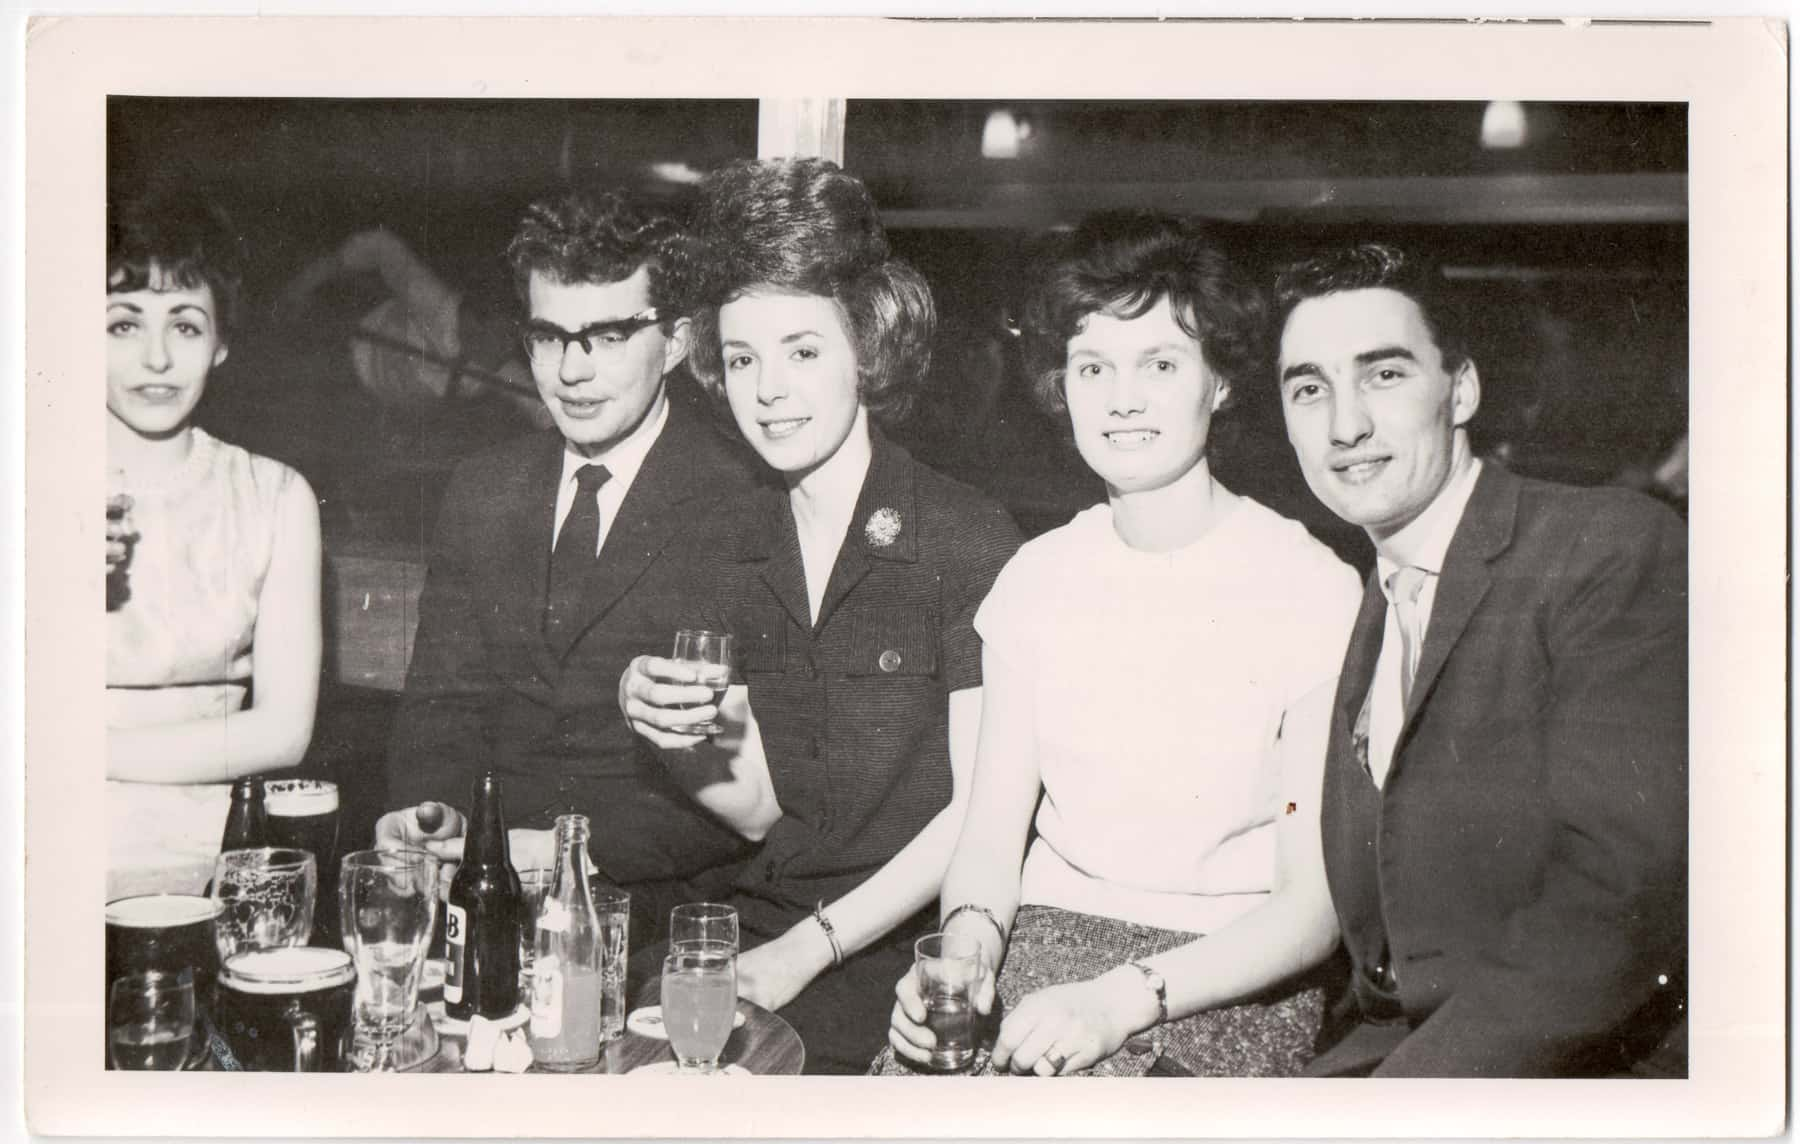 Gary and Dorothy with friends at a dance with friends in 1970.